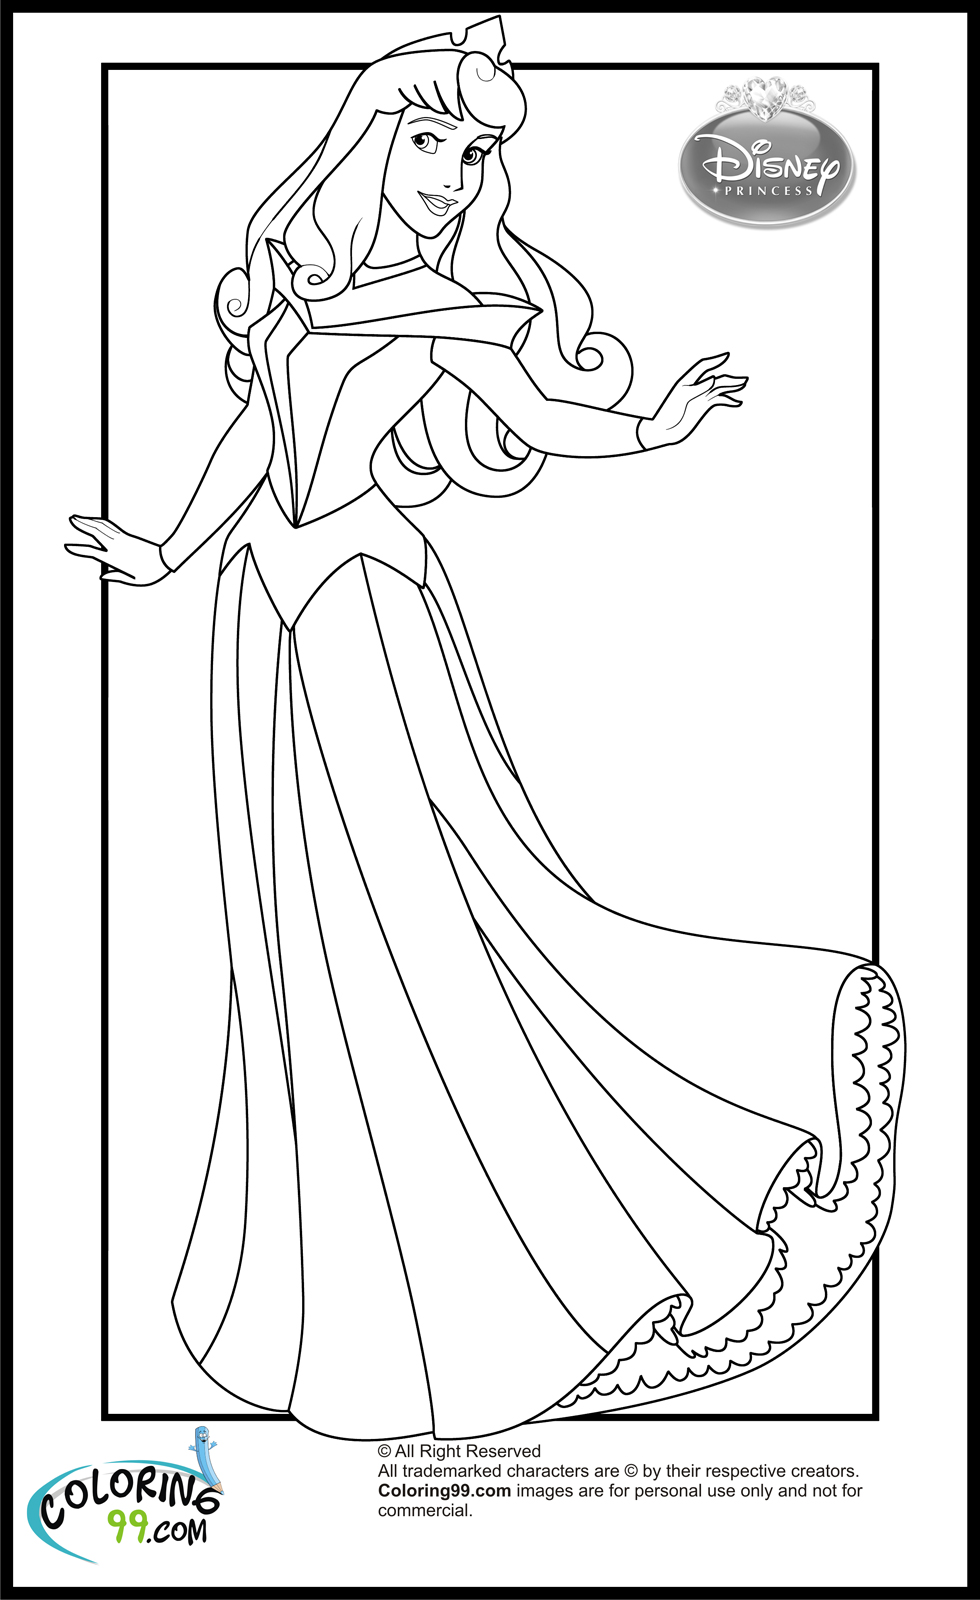 princesses coloring pages cartoon disney princesses coloring pages coloring home princesses coloring pages